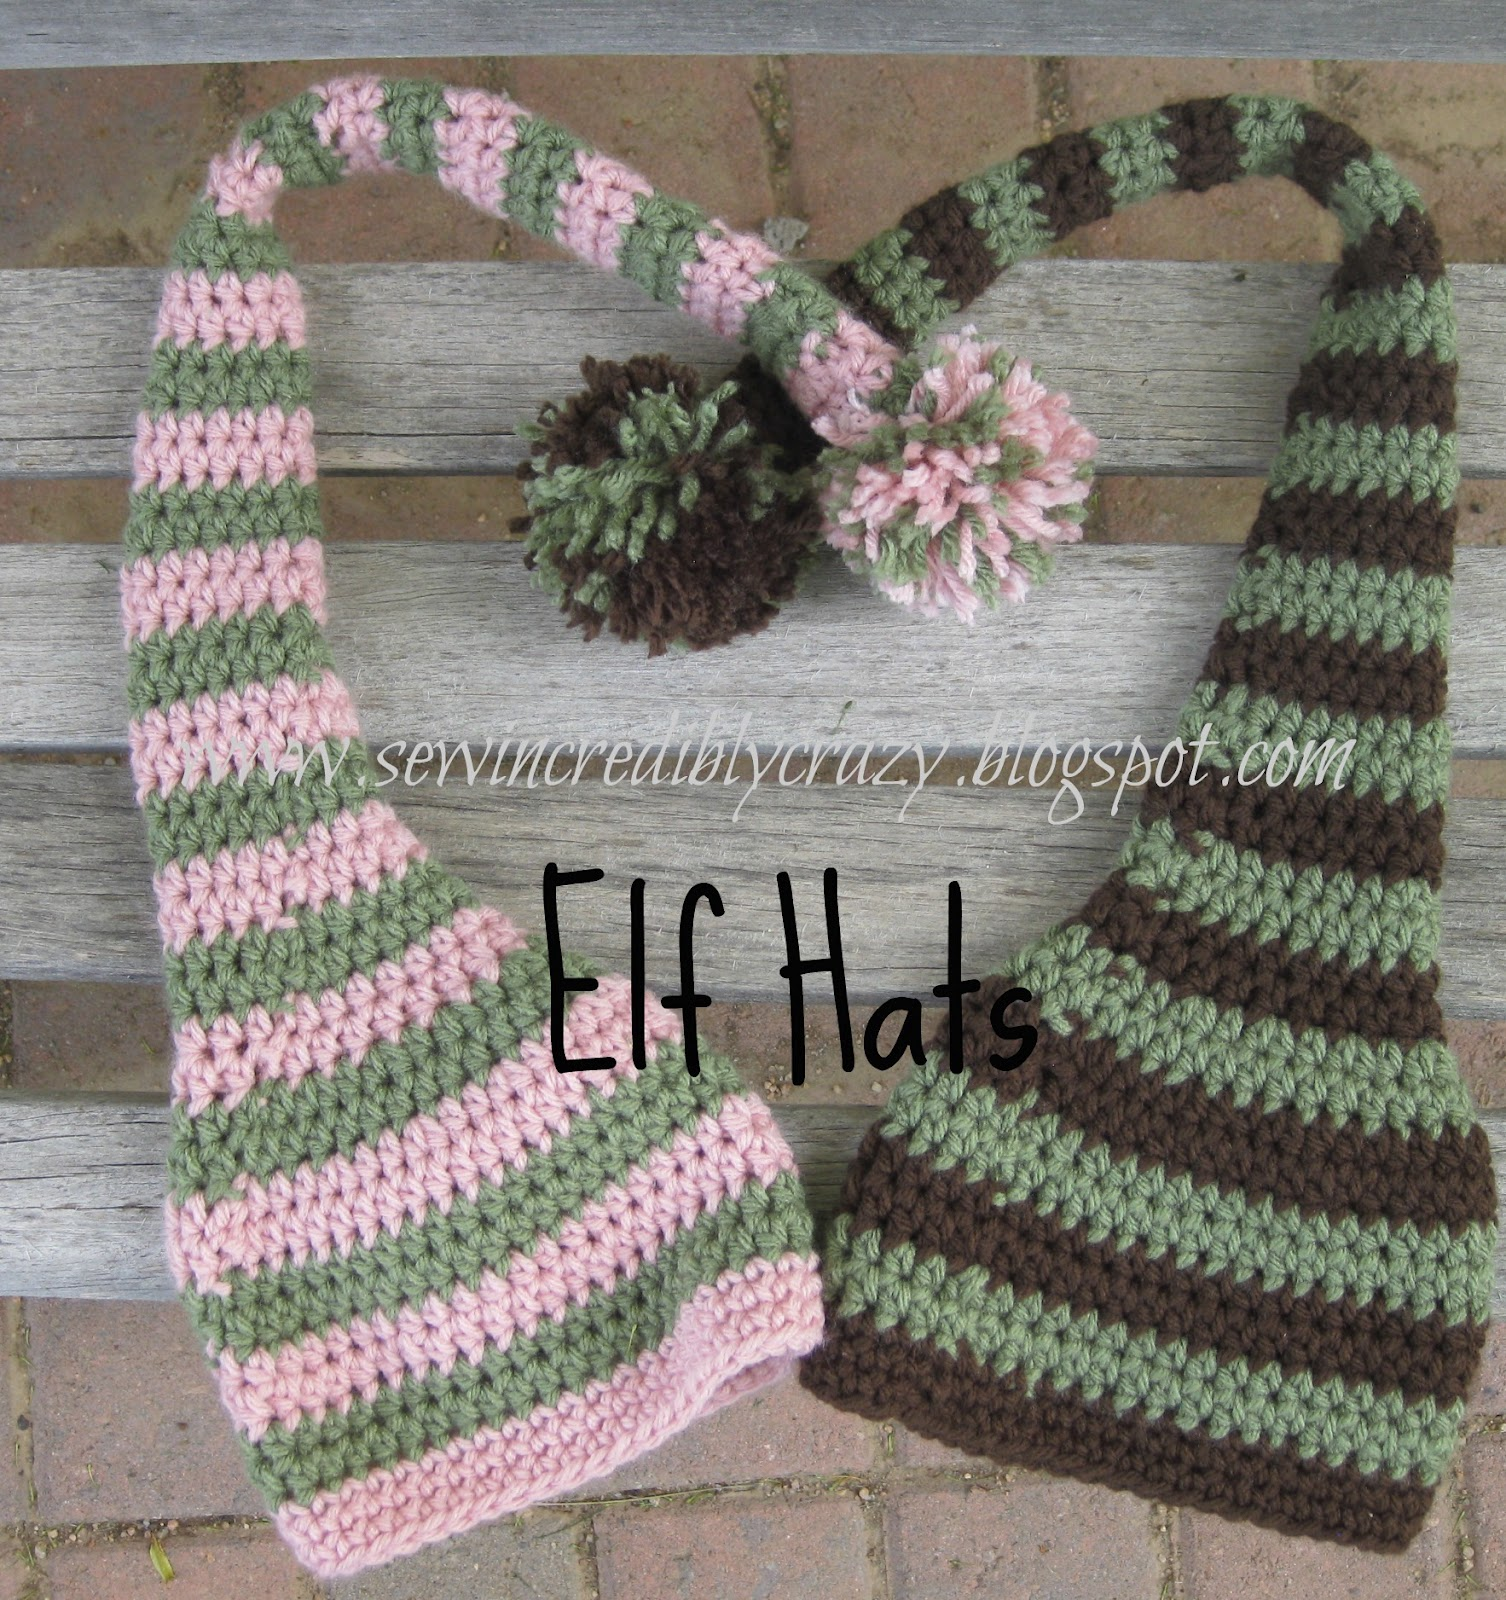 Sew Incredibly Crazy: Newborn Elf Hat